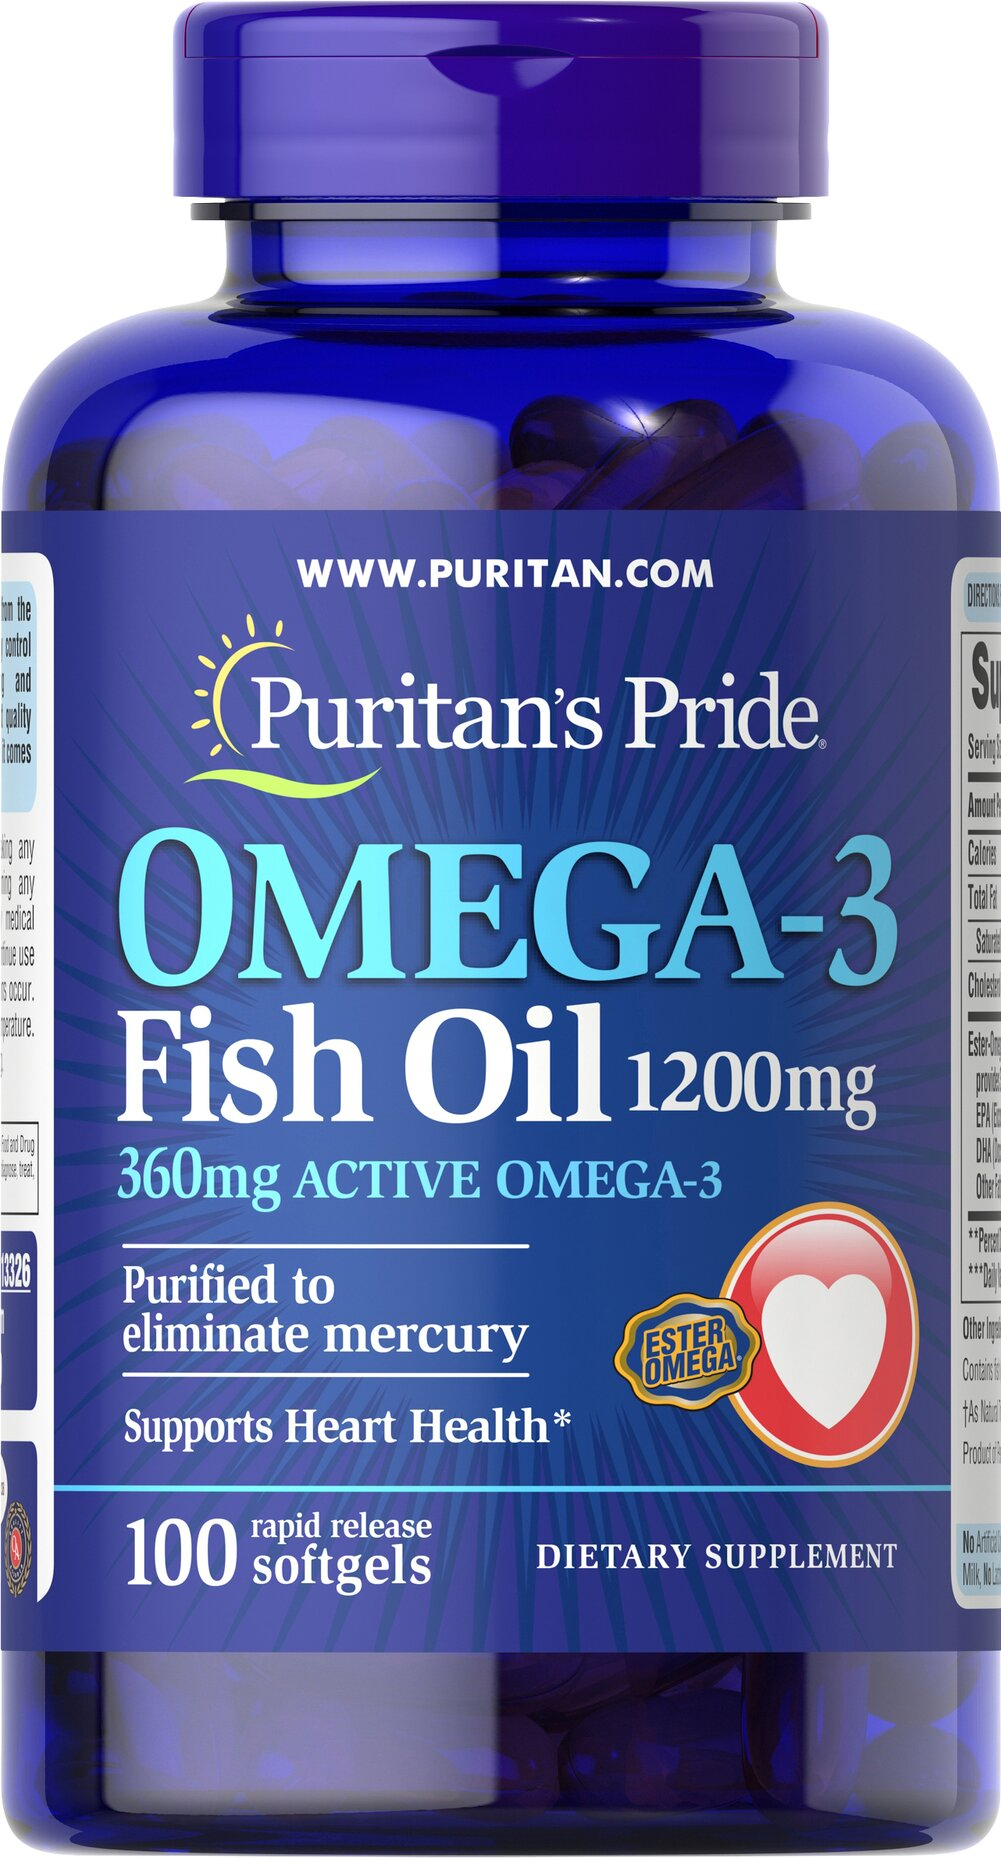 Omega-3 Fish Oil 1200mg <p><span></span>Provides 360mg of active Omega-3.</p><p><span></span>Supports heart health.**</p><p><span></span>Purified to eliminate mercury.</p><p>This Ester-Omega® Fish Oil provides 360mg of total omega-3 fatty acids, comprising of EPA, DHA and other fatty acids. EPA and DHA fatty acids support heart health.** Purified to eliminate mercury. Rapid release softgels.</p> 100 Softgels